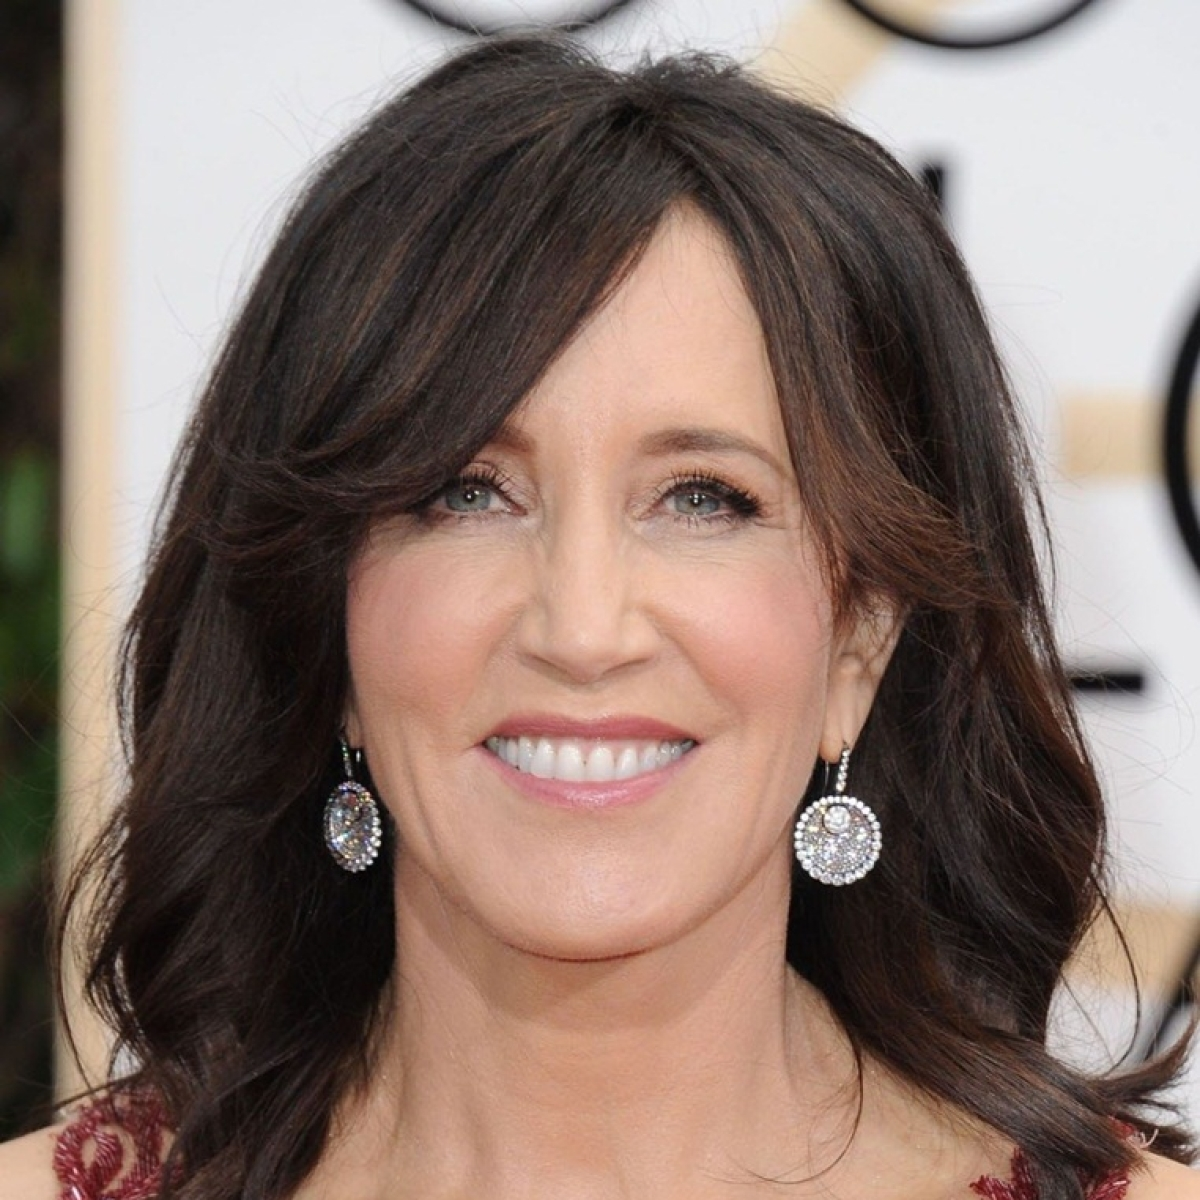 Actress Felicity Huffman gets 14-day prison sentence